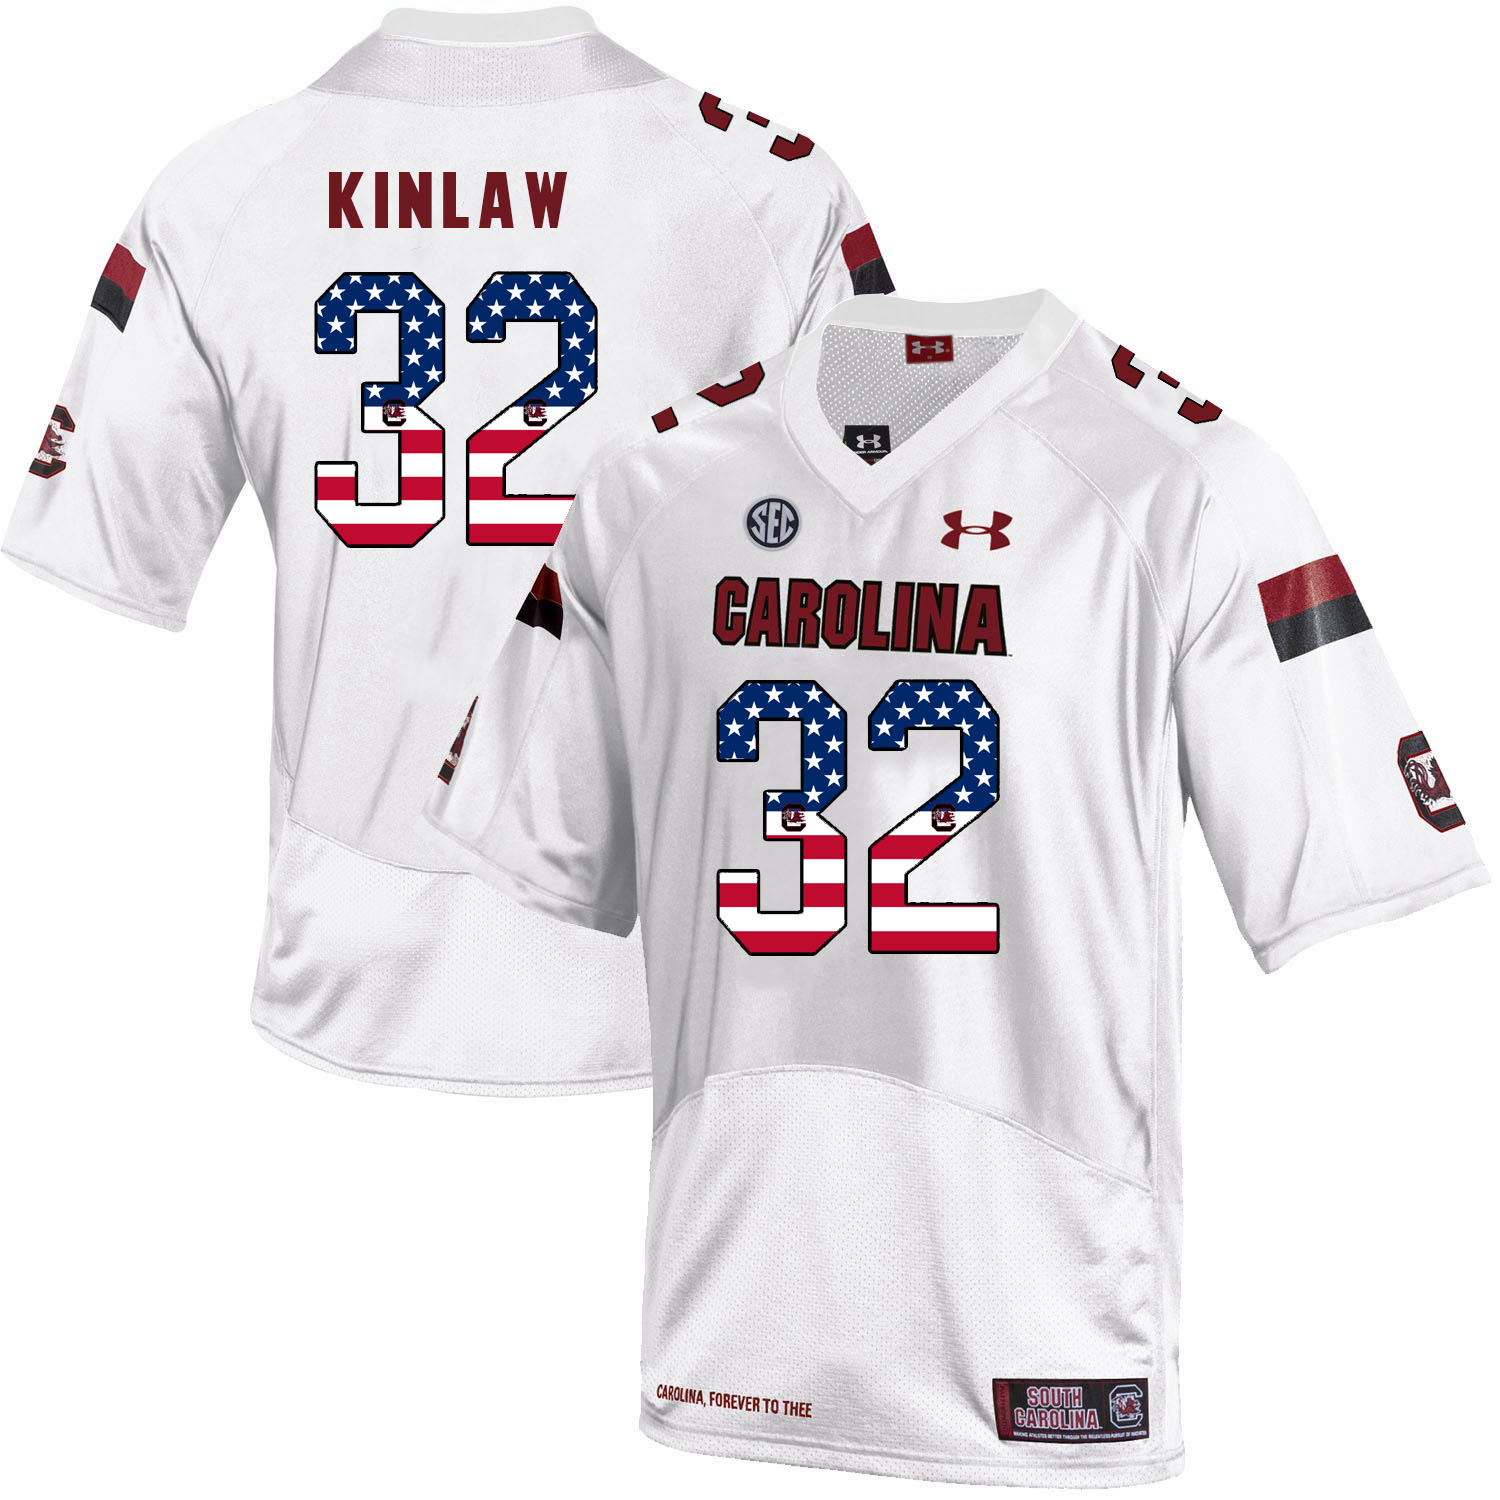 South Carolina Gamecocks 32 Caleb Kinlaw White USA Flag College Football Jersey